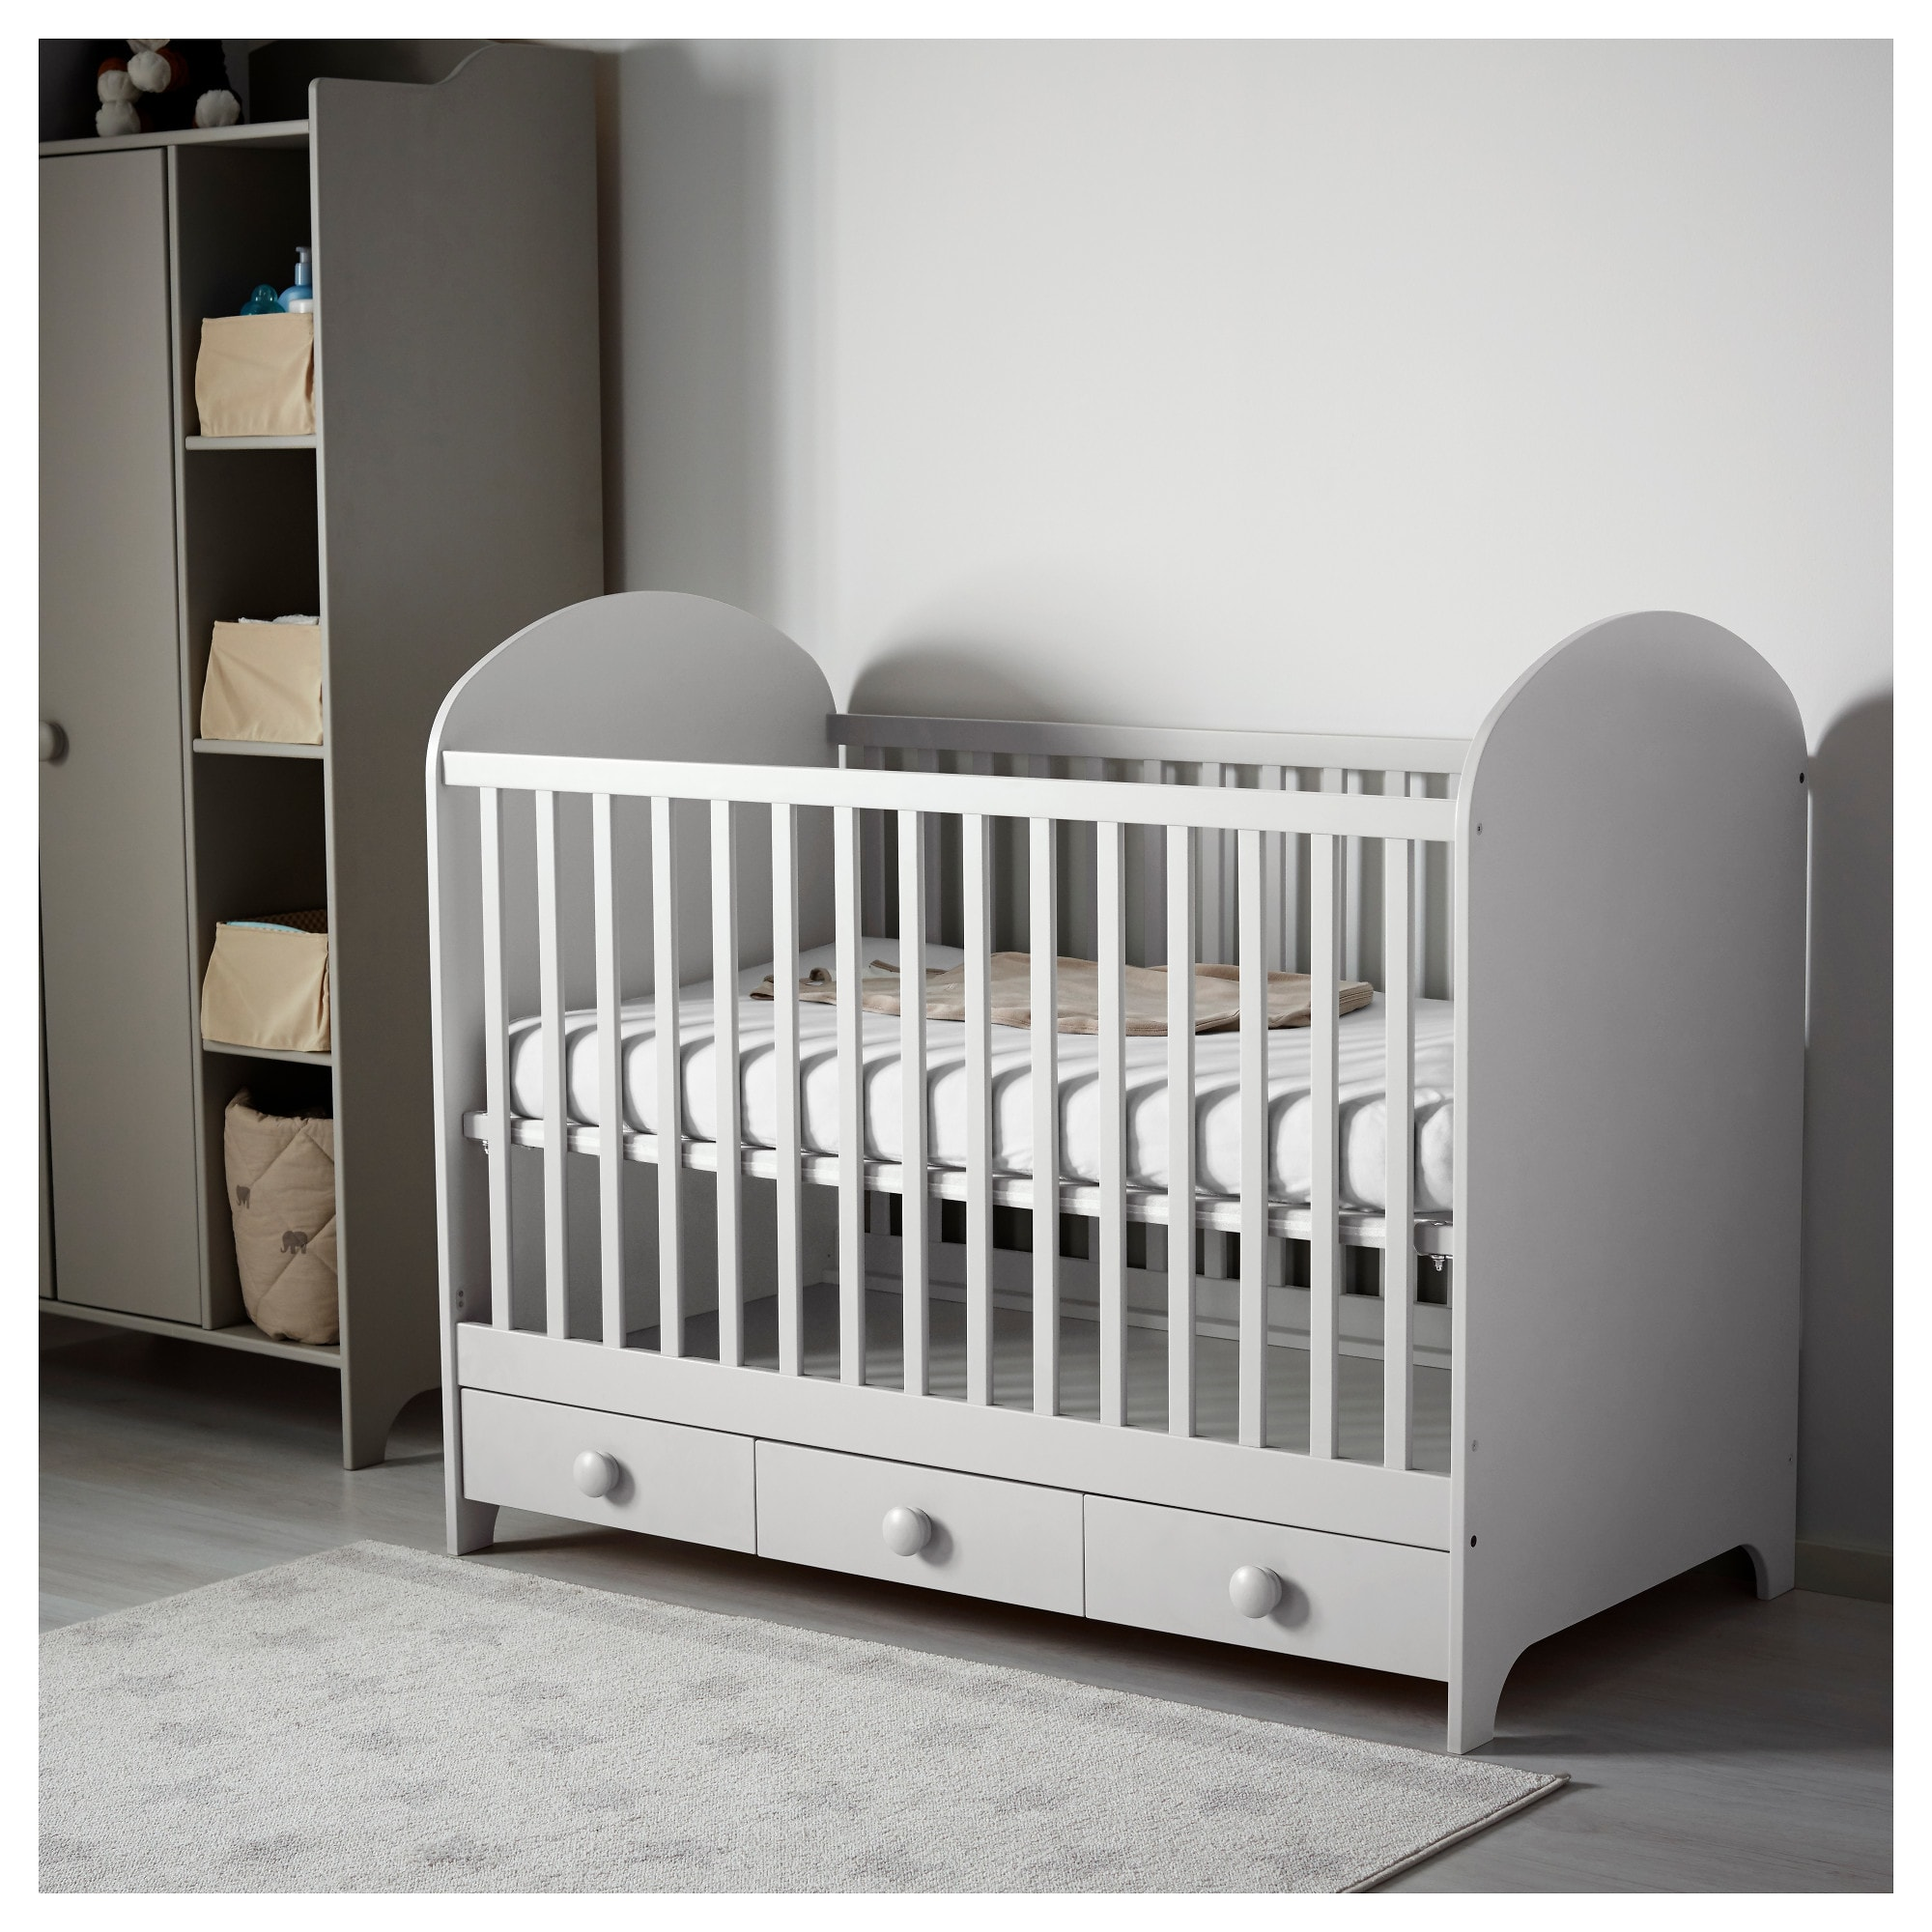 Gonatt Crib Light Gray 27 1 2x52 With Images Ikea Crib